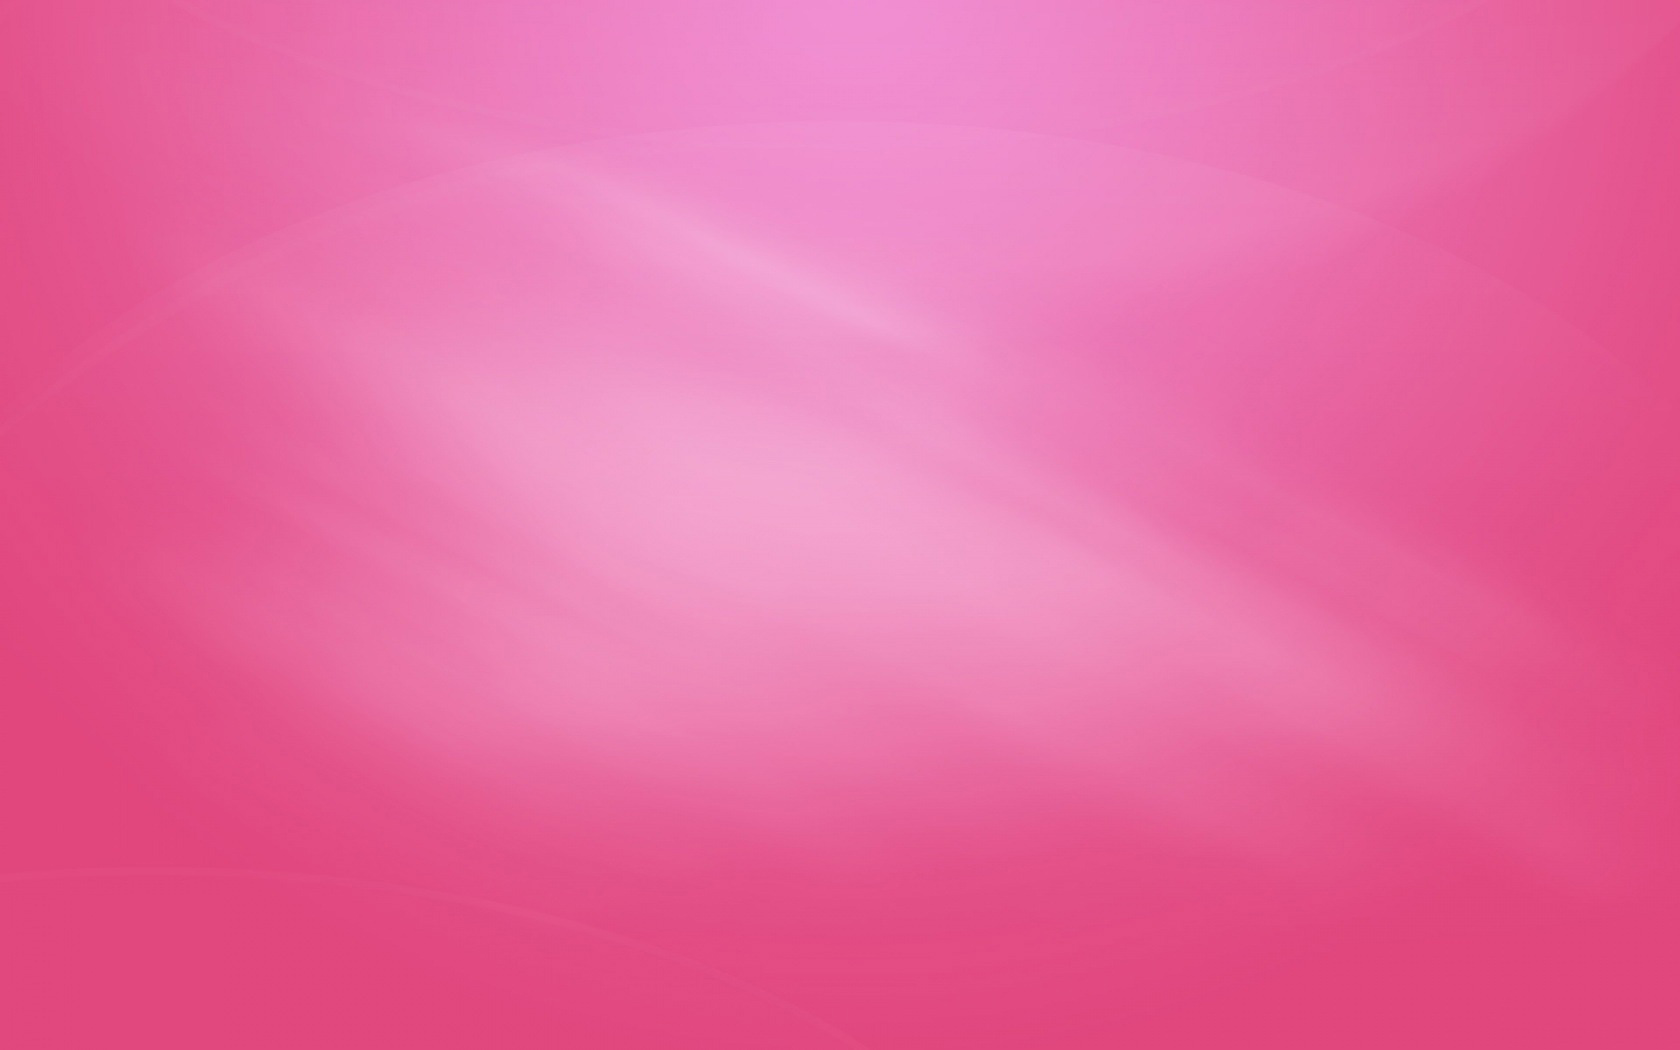 Pink Wallpaper For Computer